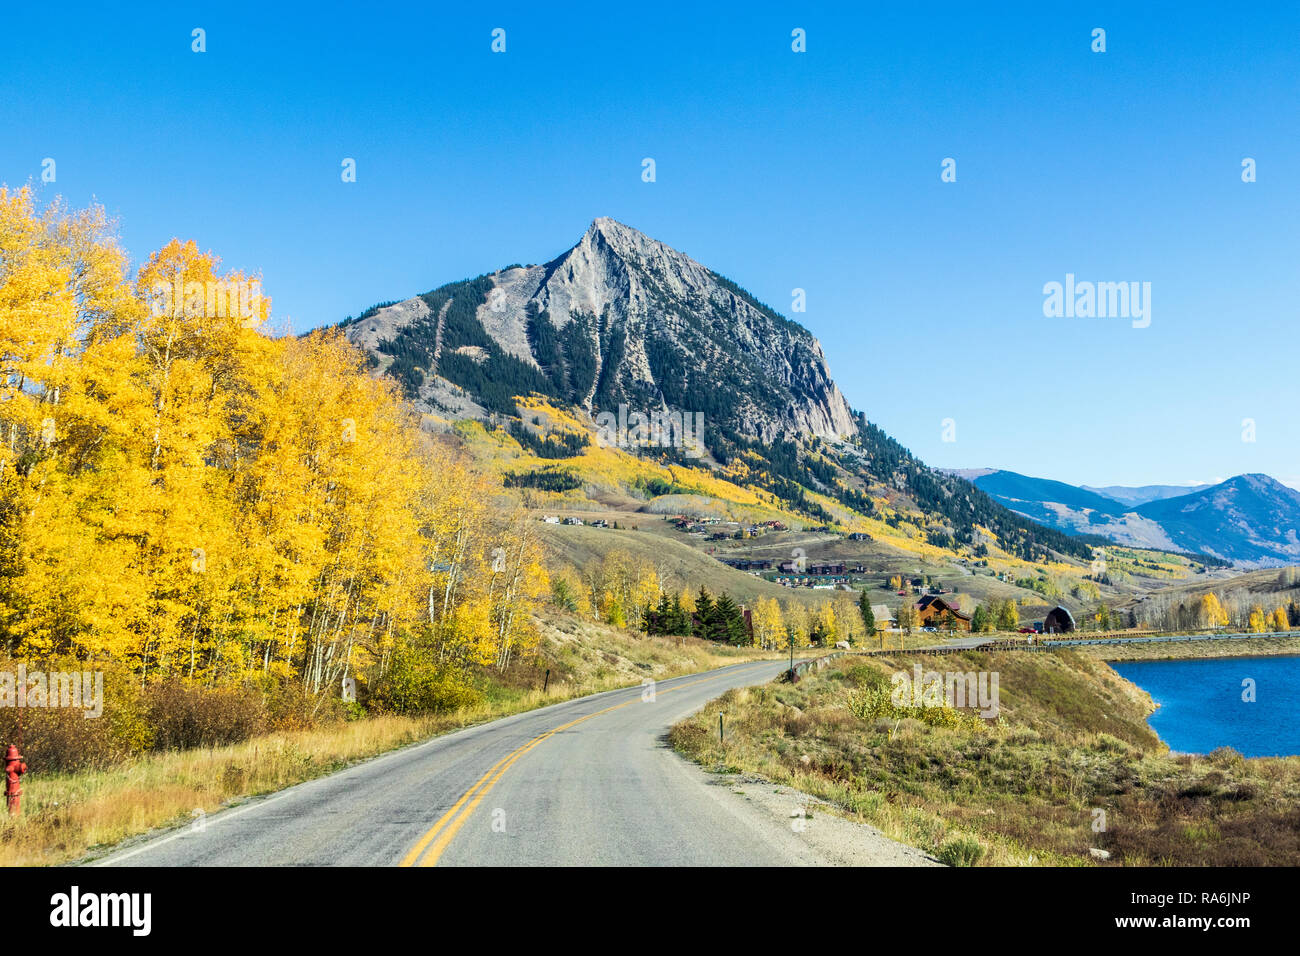 Crested Butte Mountain (or Mount Crested Butte) in Colorado in autumn. - Stock Image